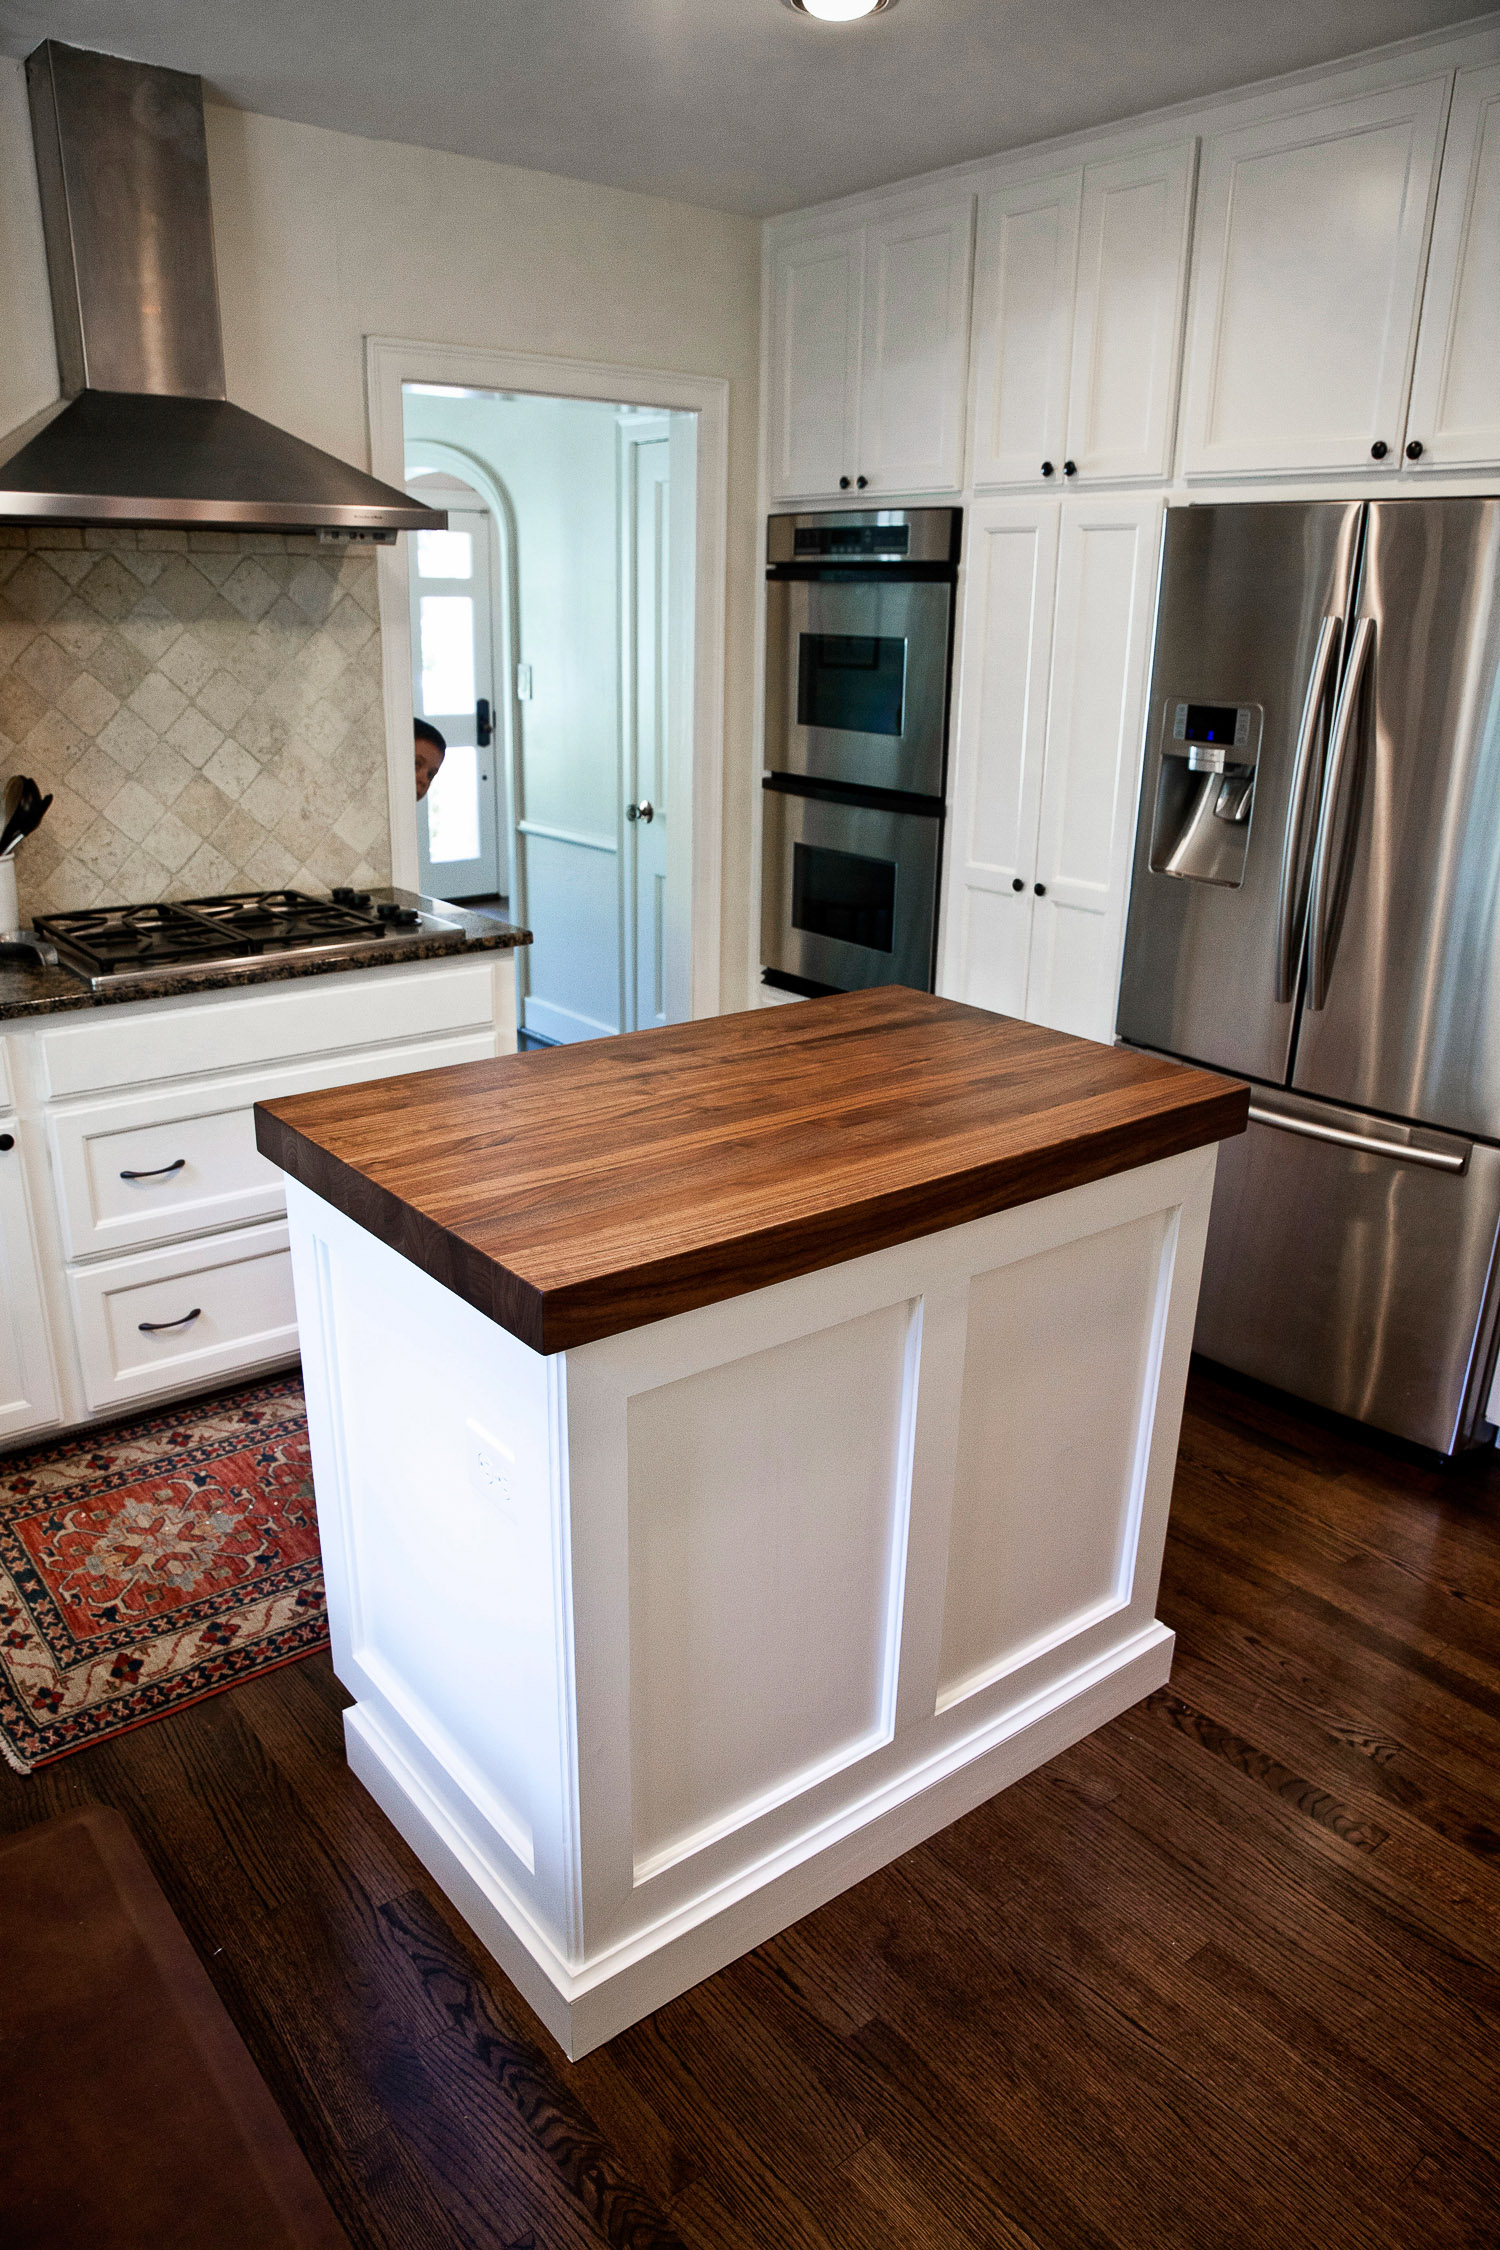 walnut kitchen island in west u kitchen island countertop Walnut Kitchen Island Counter in West University Houston Texas